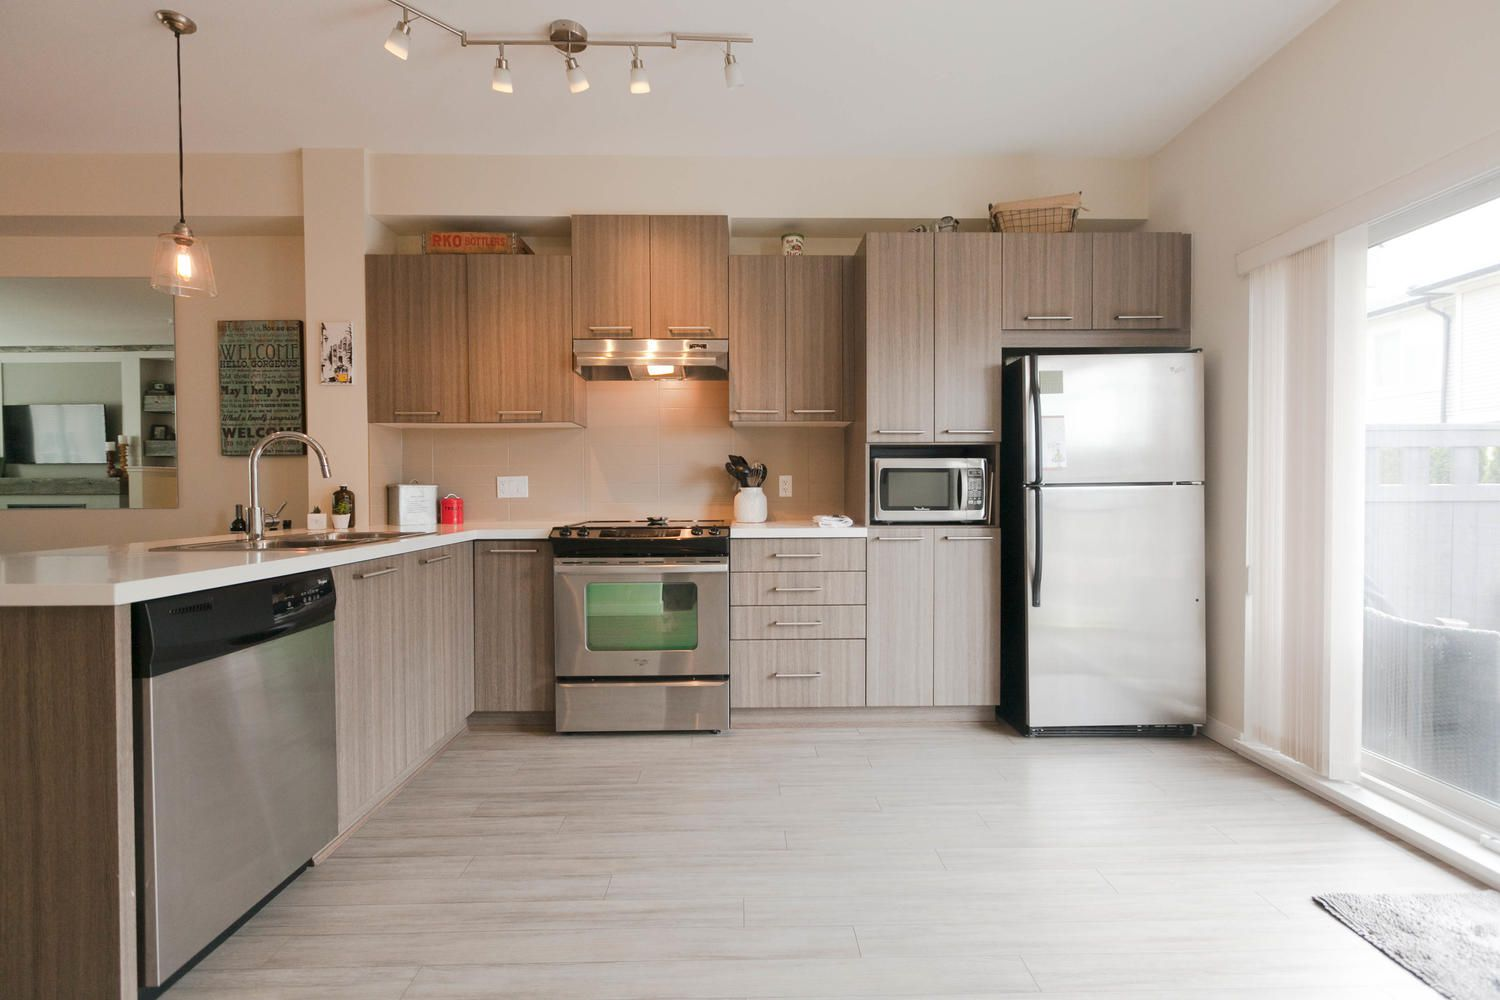 """Photo 16: Photos: 97 7938 209 Street in Langley: Willoughby Heights Townhouse for sale in """"Red Maple Park"""" : MLS®# R2260950"""